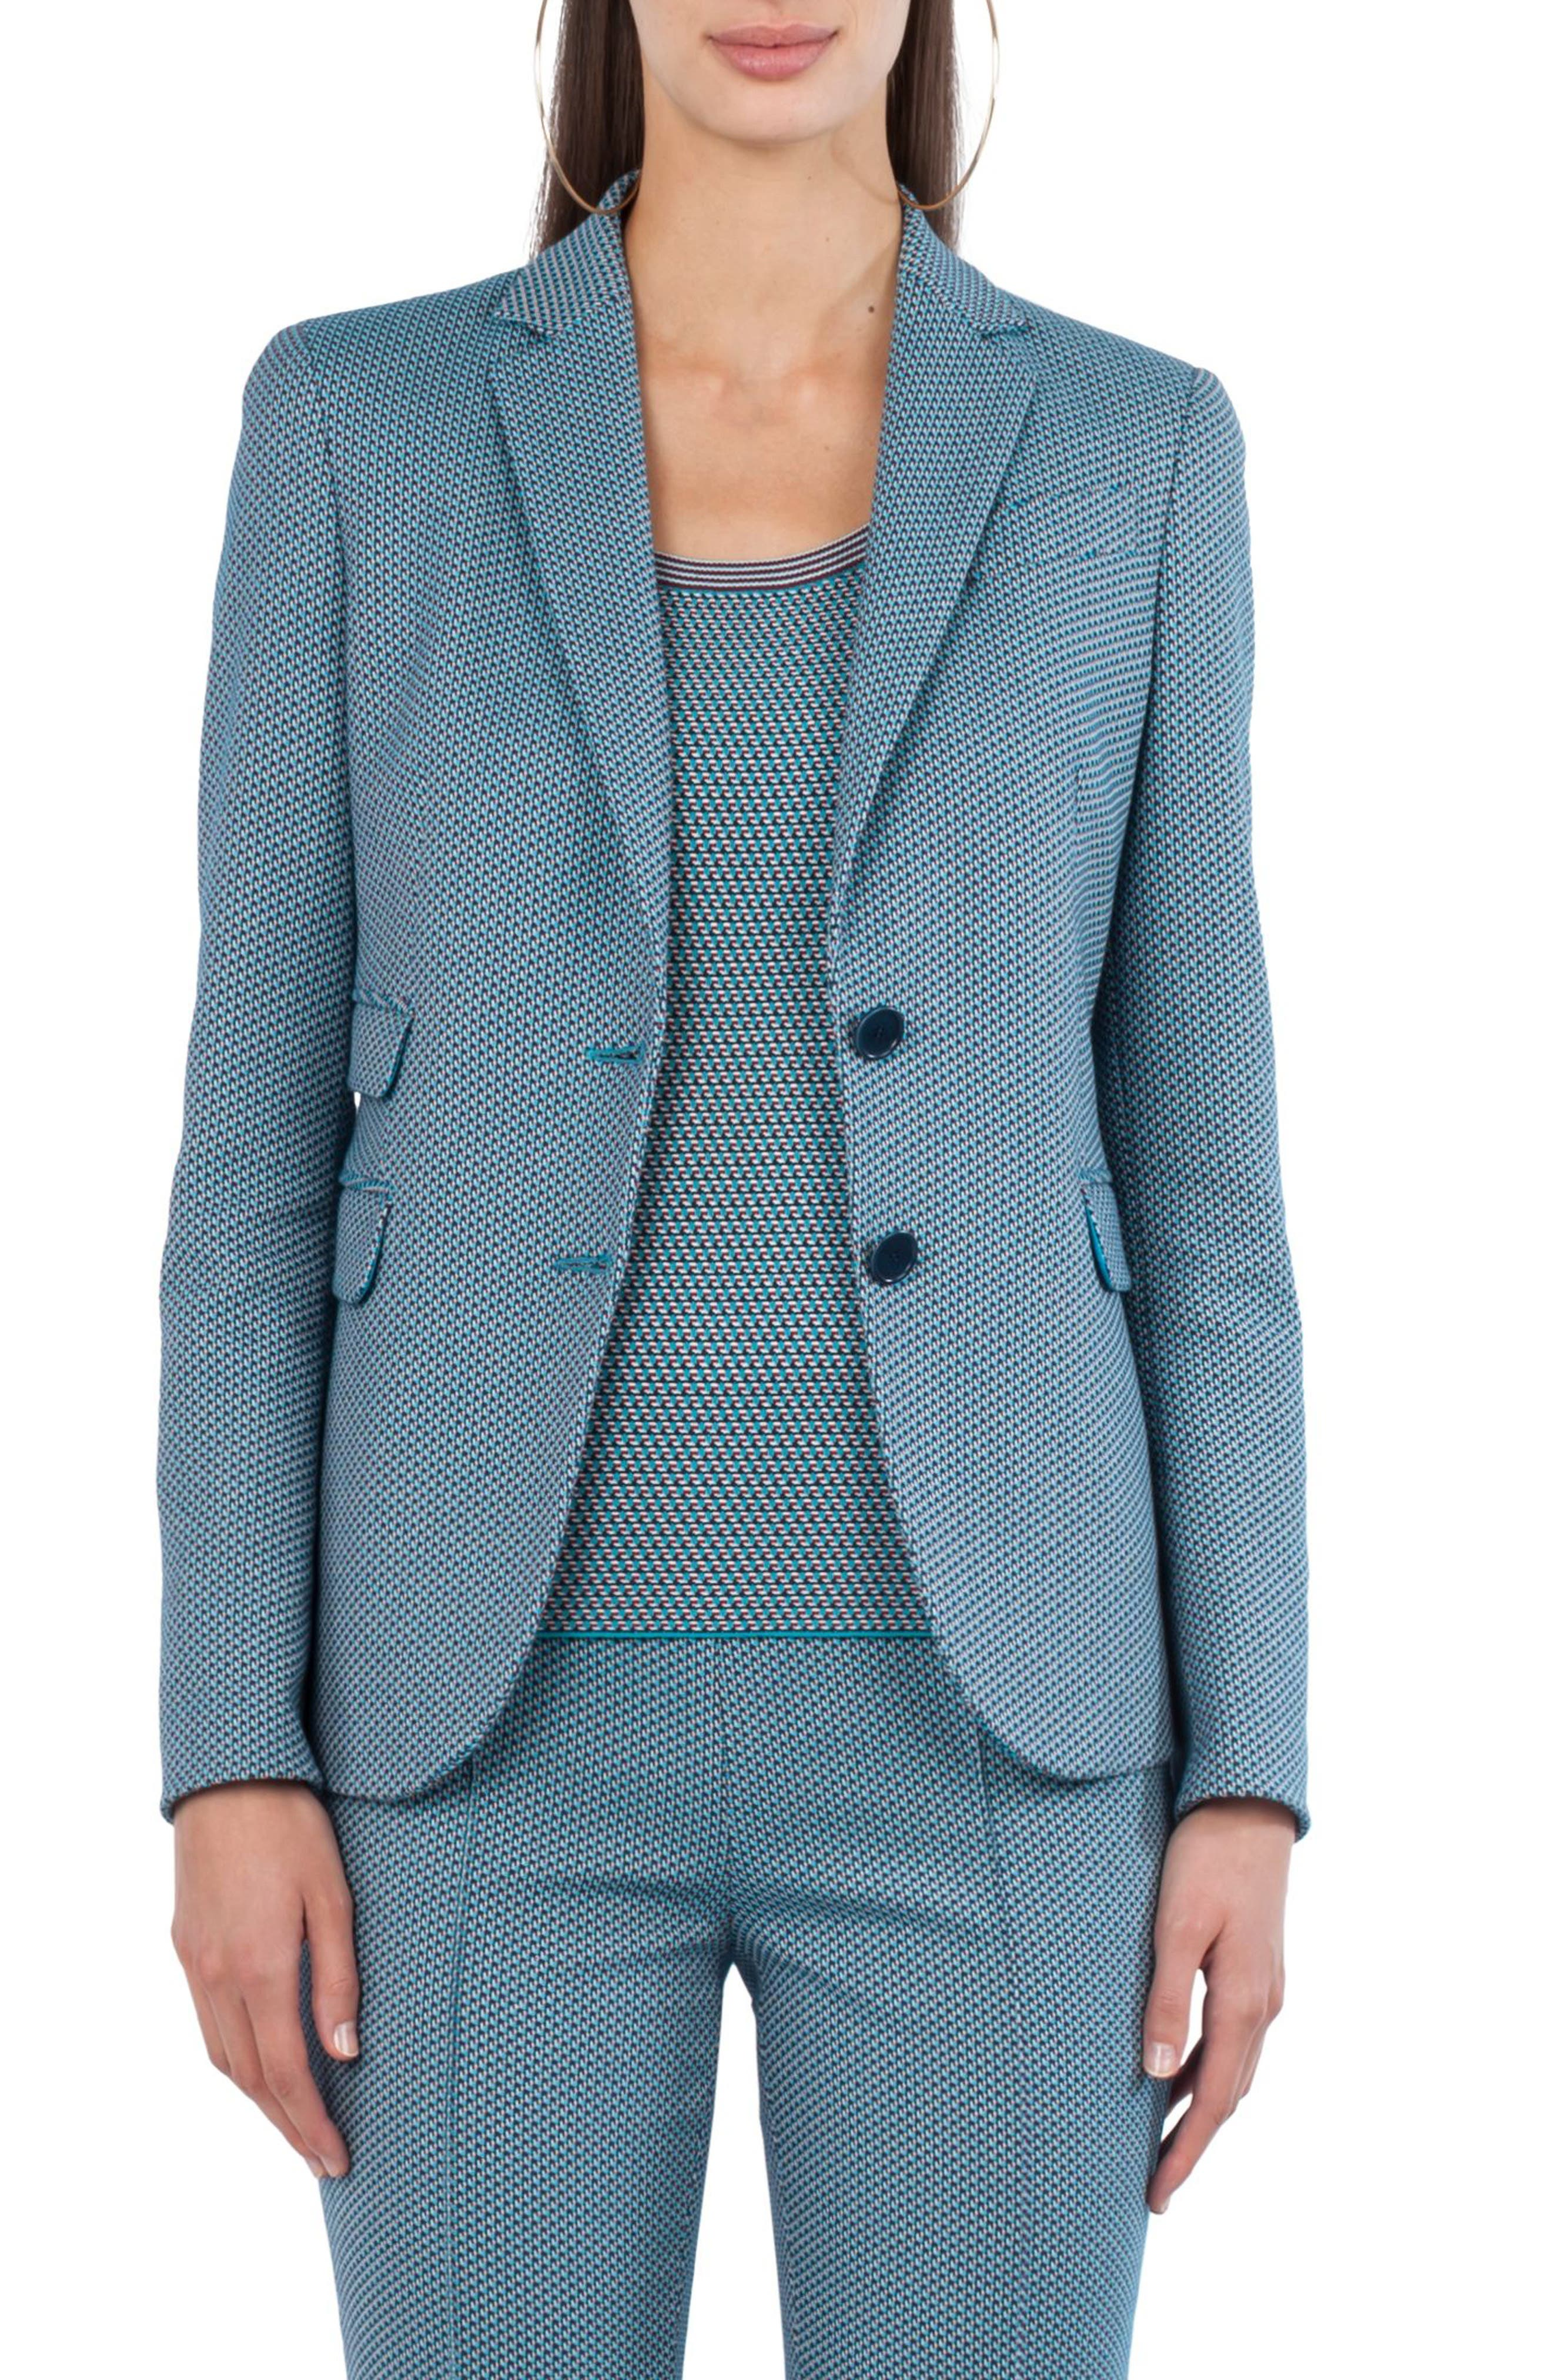 Fantasy Jacquard Knit Blazer,                             Main thumbnail 1, color,                             476